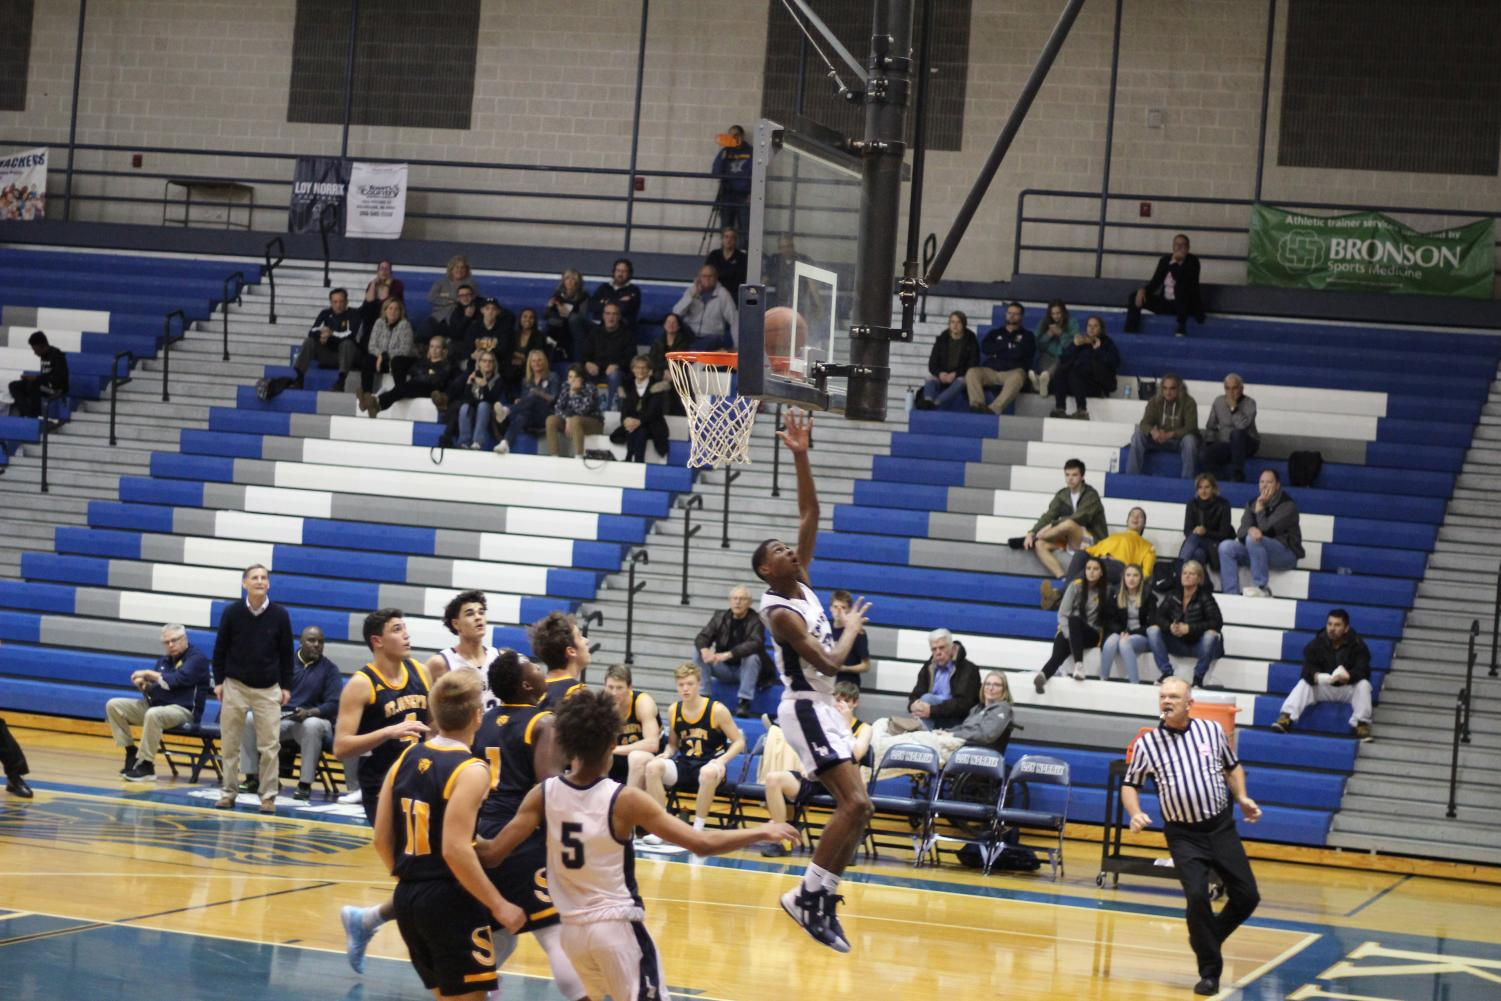 Varsity basketball player and senior Joshua Mabon Cooks recovers the ball and scores in the second quarter. Loy Norrix had a rough first quarter but pushed St. Joseph until the 4th quarter, going into overtime. Photo Credit / Colin Carnell